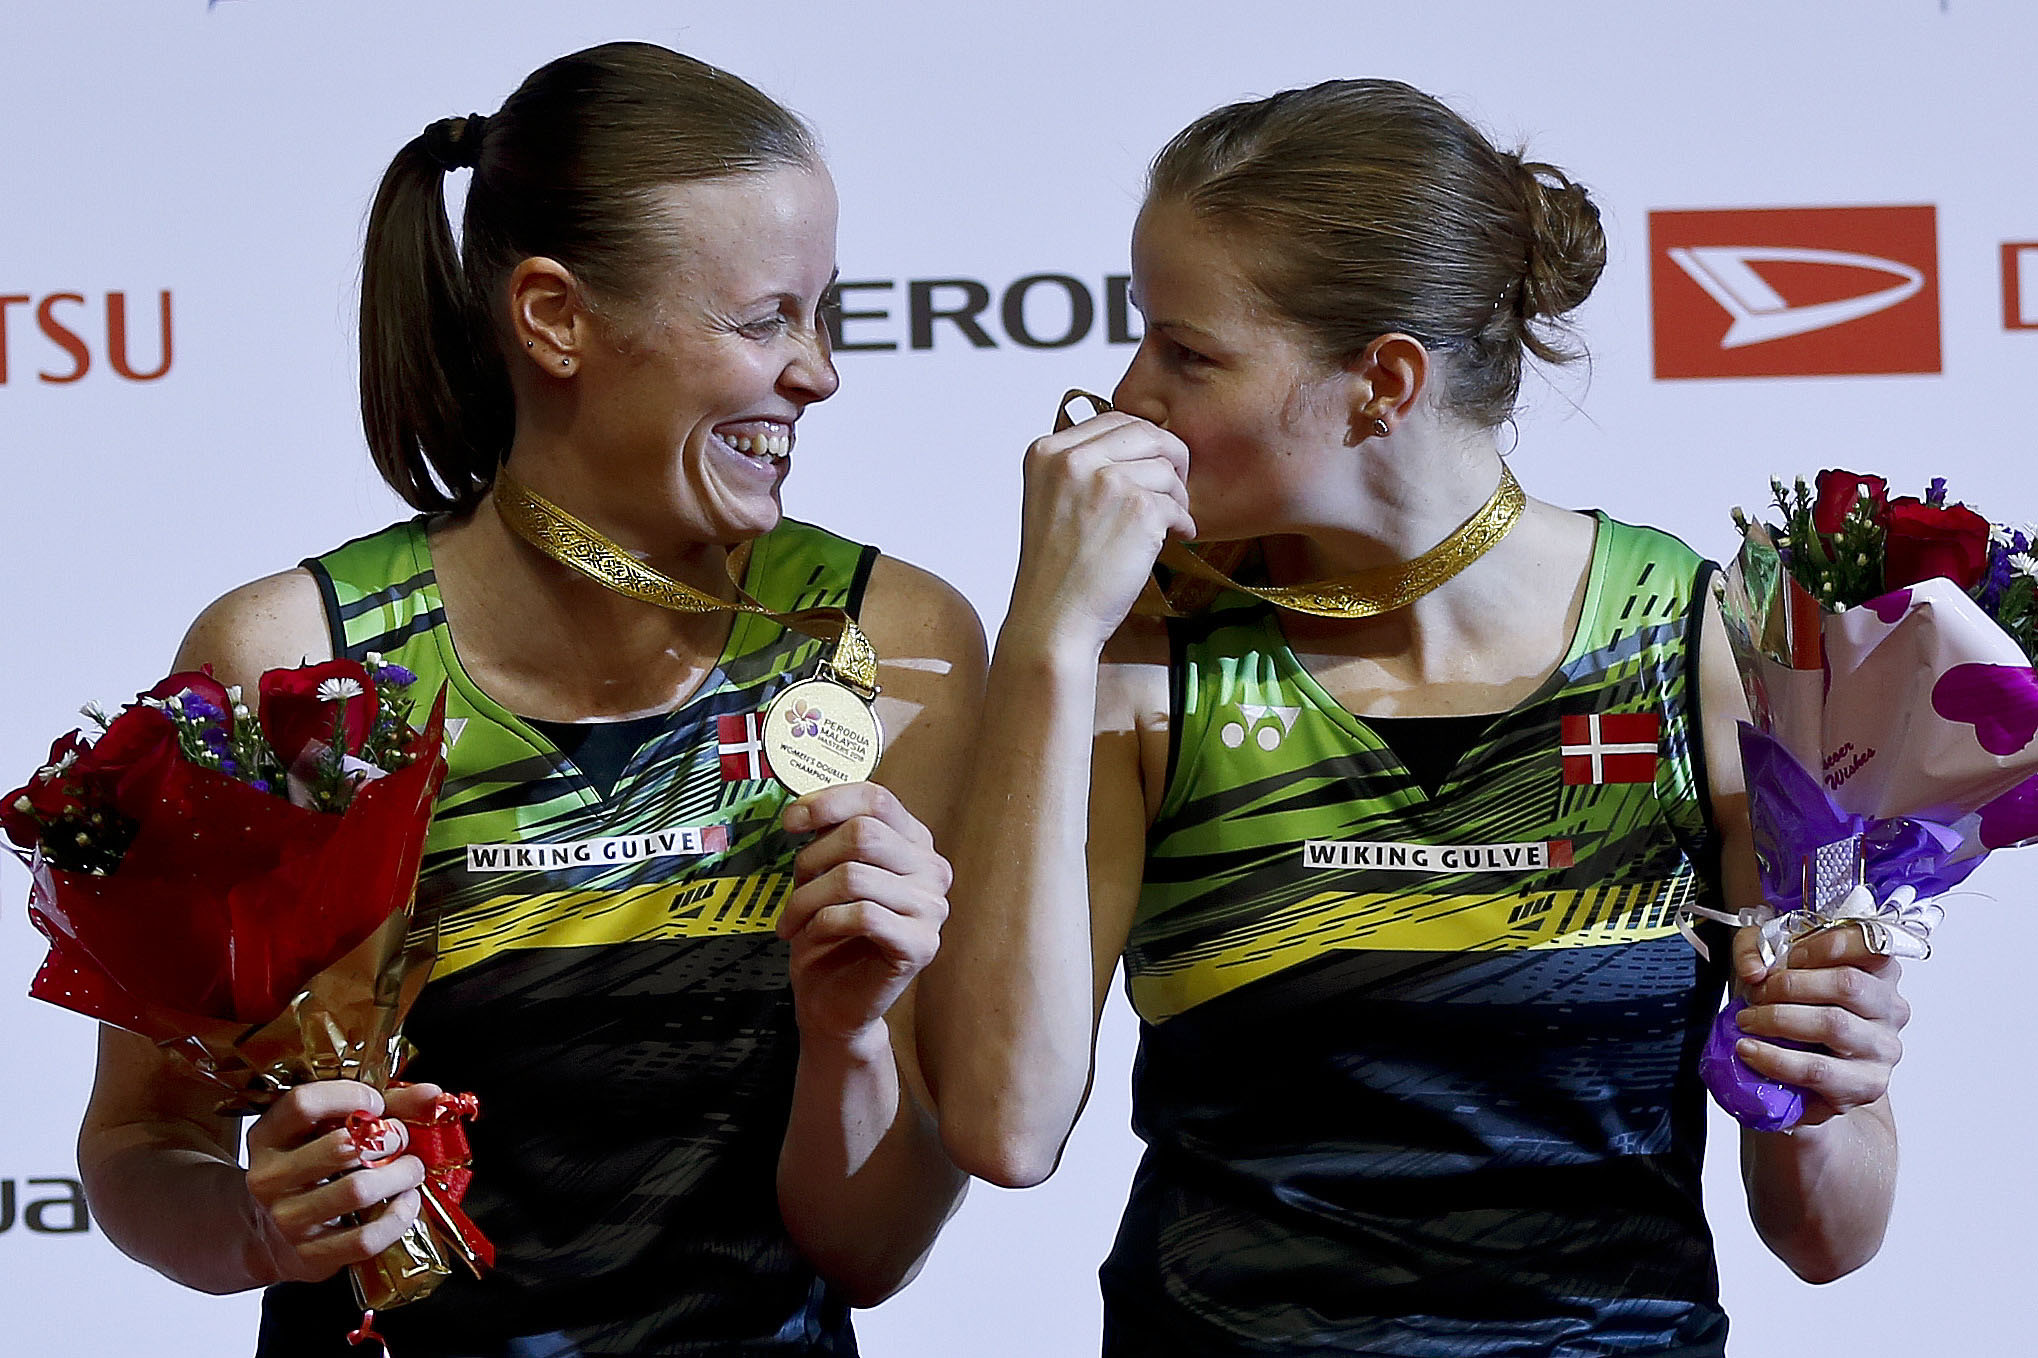 Denmark's Christinna Pedersen (right) and Kamilla Rytter Juhl react at each other with their gold medals during the award ceremony after winning the women's doubles final match against China's Chen Qingchen and Jia Yifan at the Malaysia Masters badminton tournament in Kuala Lumpur, Malaysia on Sunday.